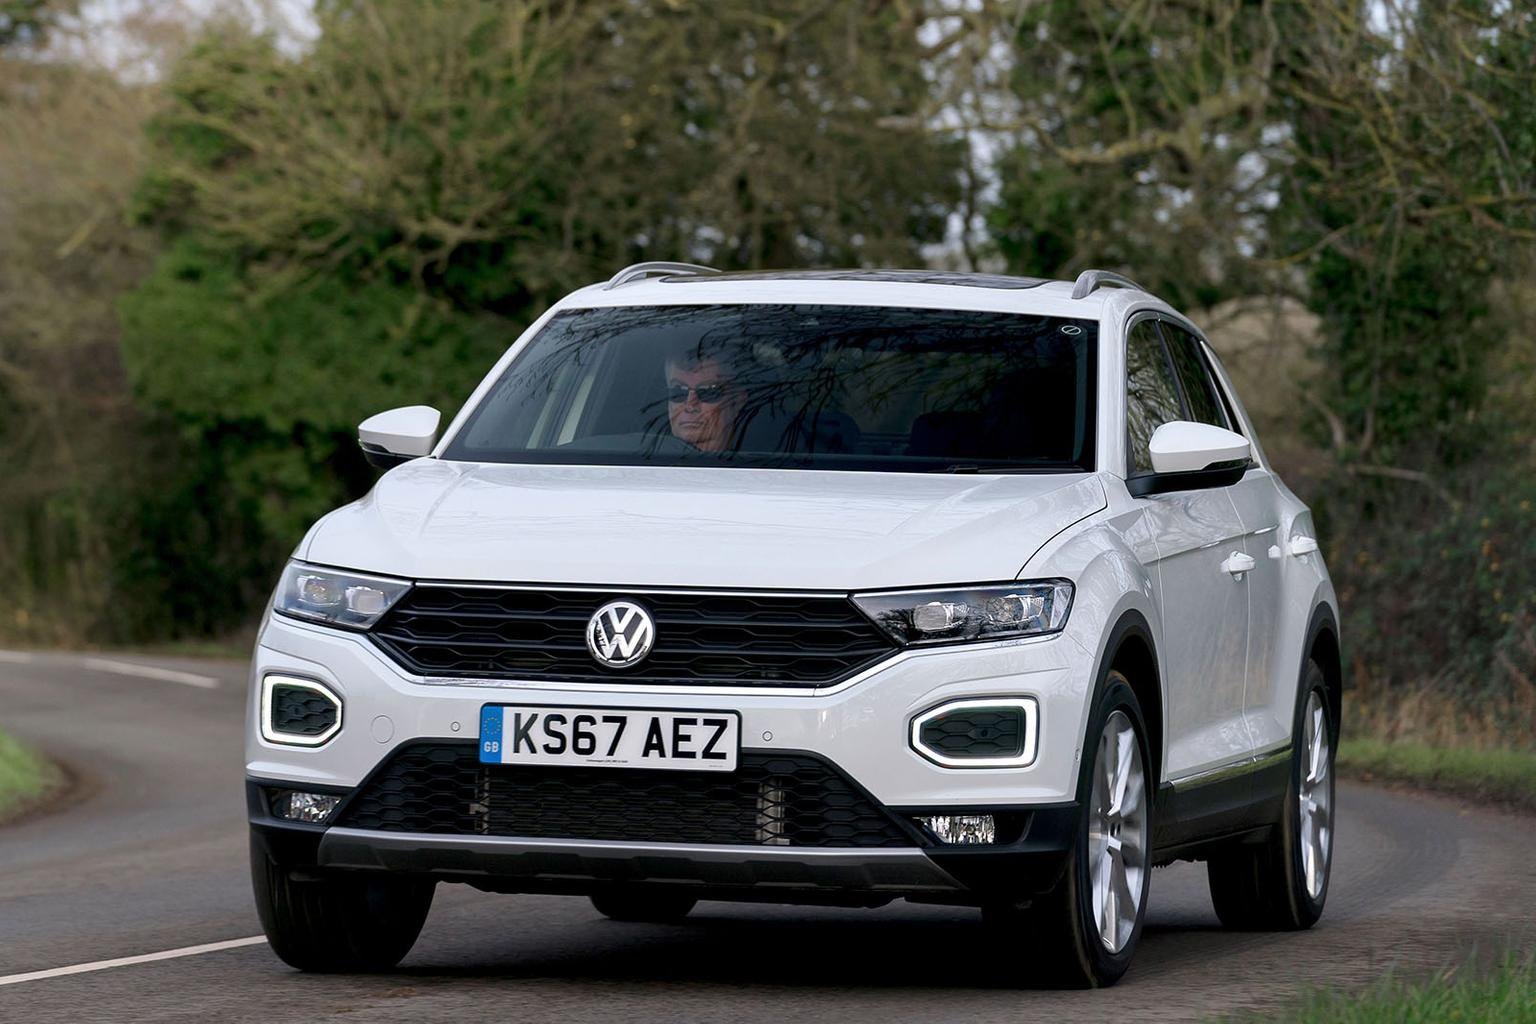 2018 Volkswagen T-Roc 2.0 TSI 190 review – price, specs and release date